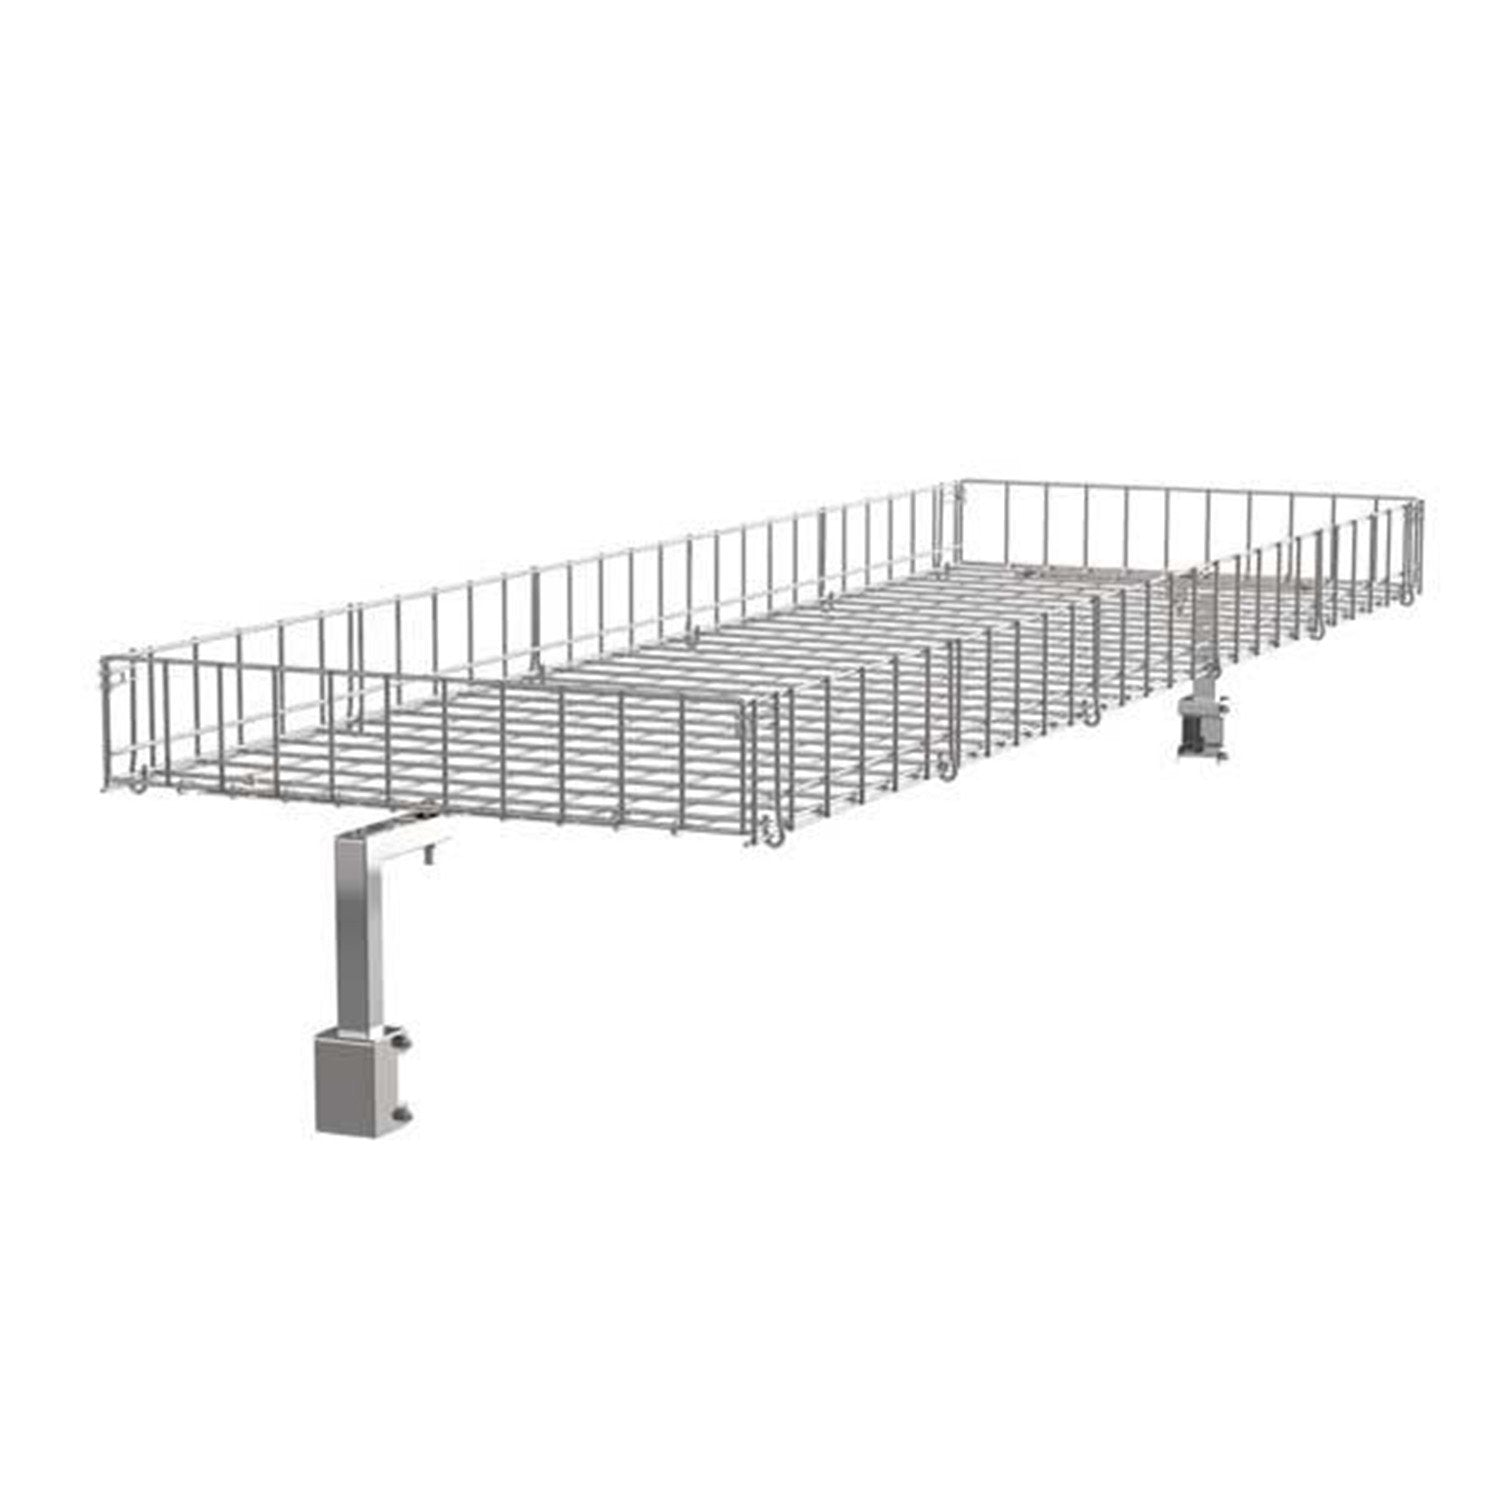 "18"" W X 55"" L Top Shelf For Z Rack - Display Fixture Warehouse Retail"